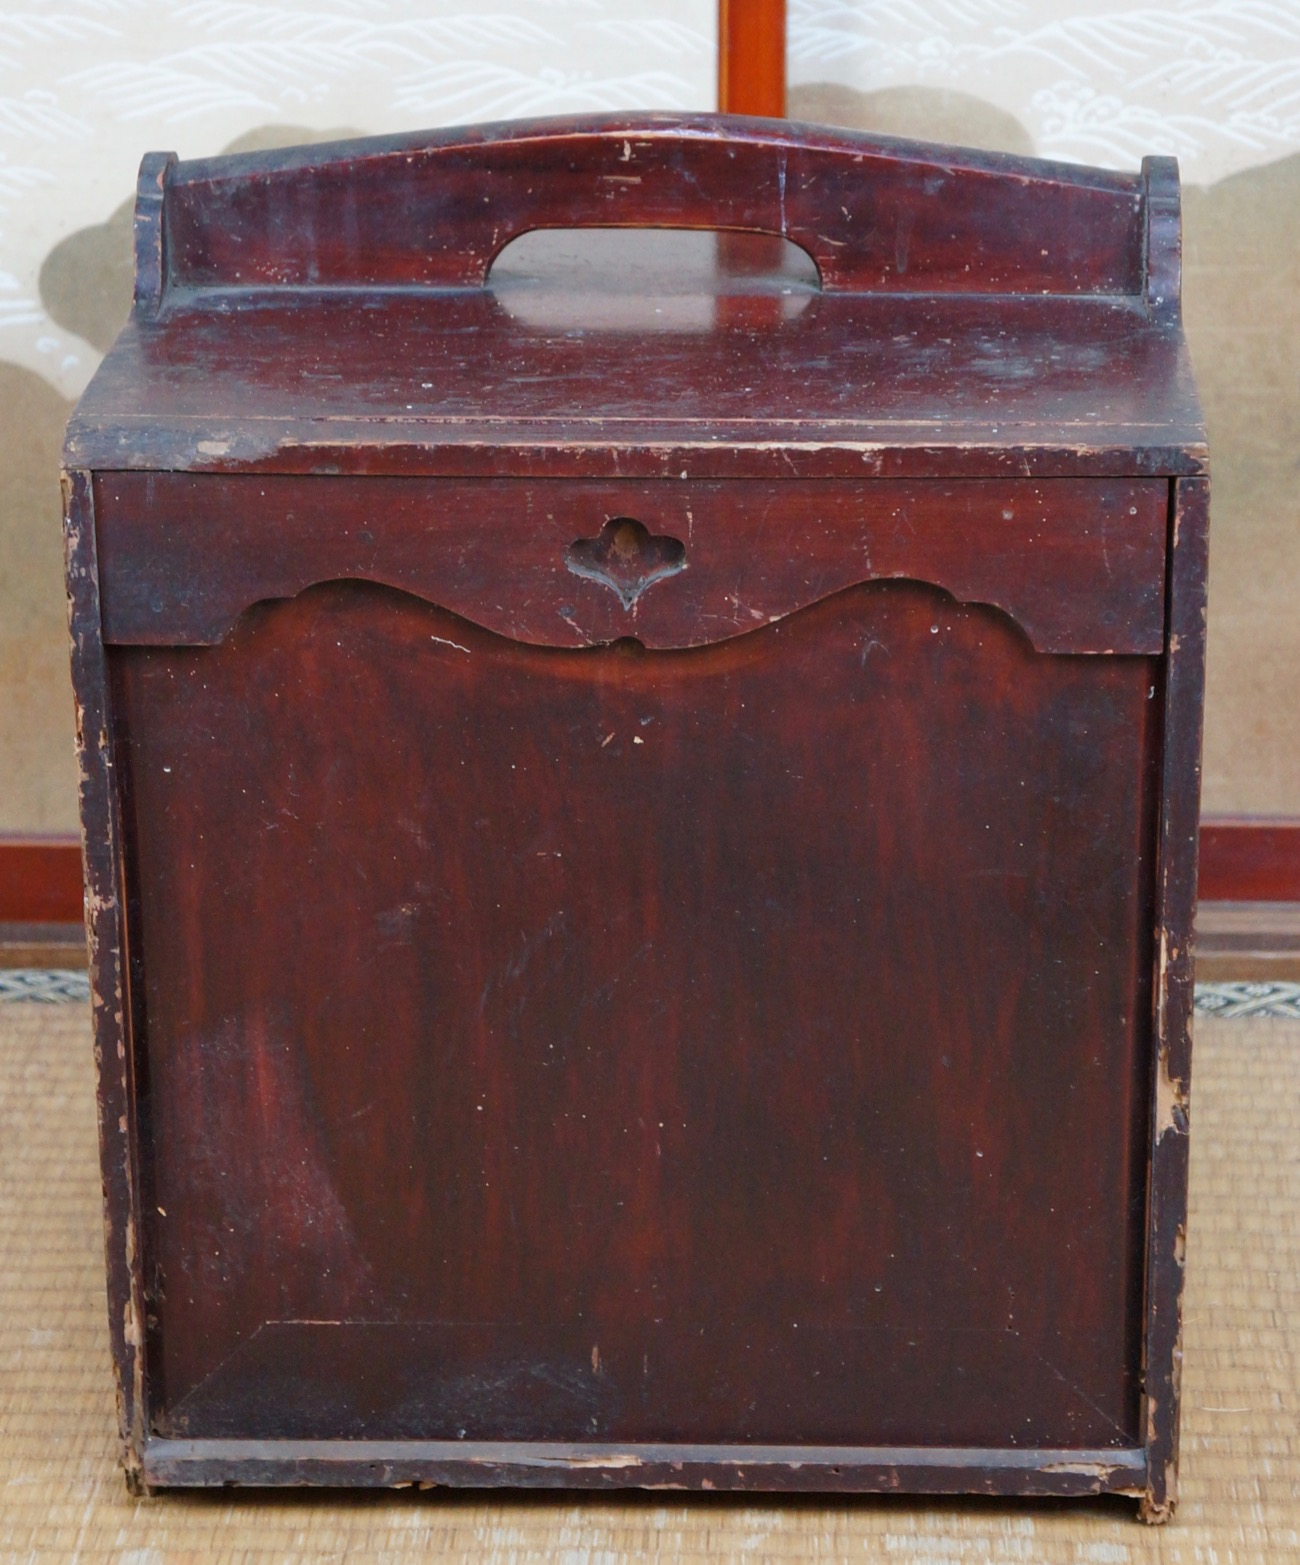 Materials: wood - Japanese Delivery Box 1900s Japan Wood Craft Furniture Antique